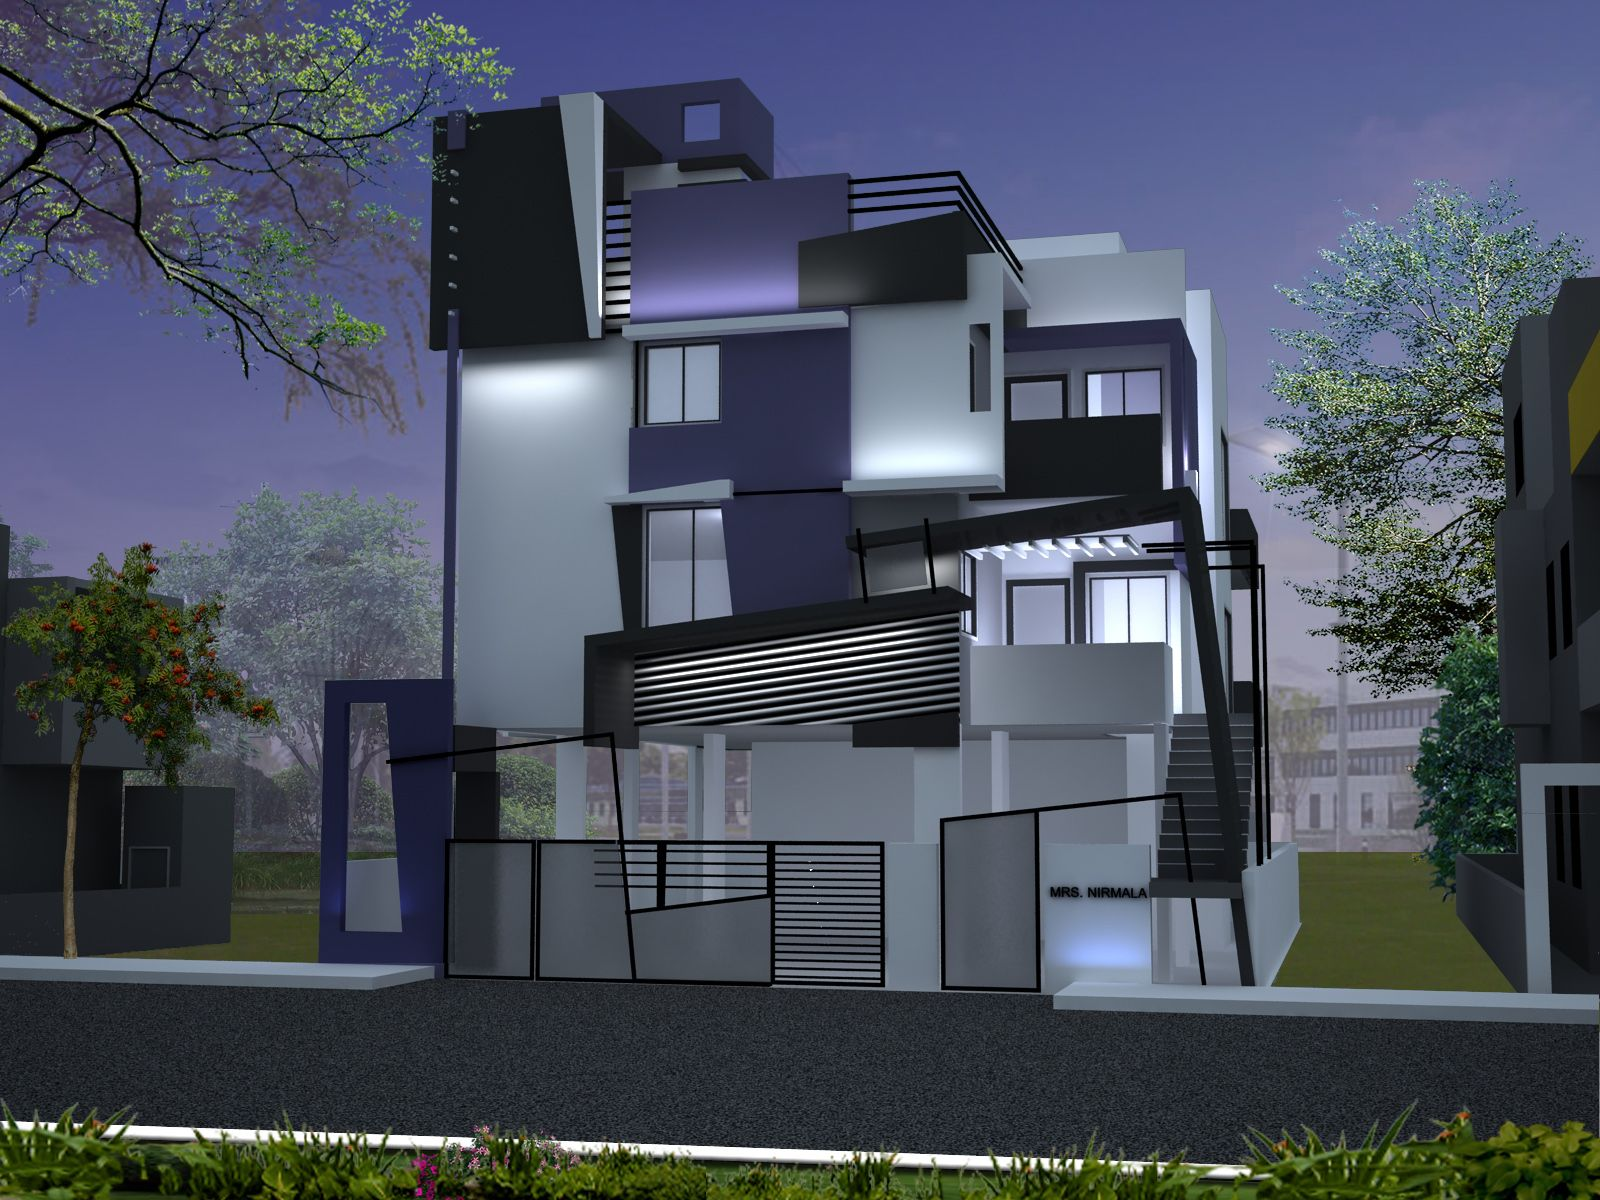 Chandrashekars house front elevation design by ashwin architects in bangalore call 91